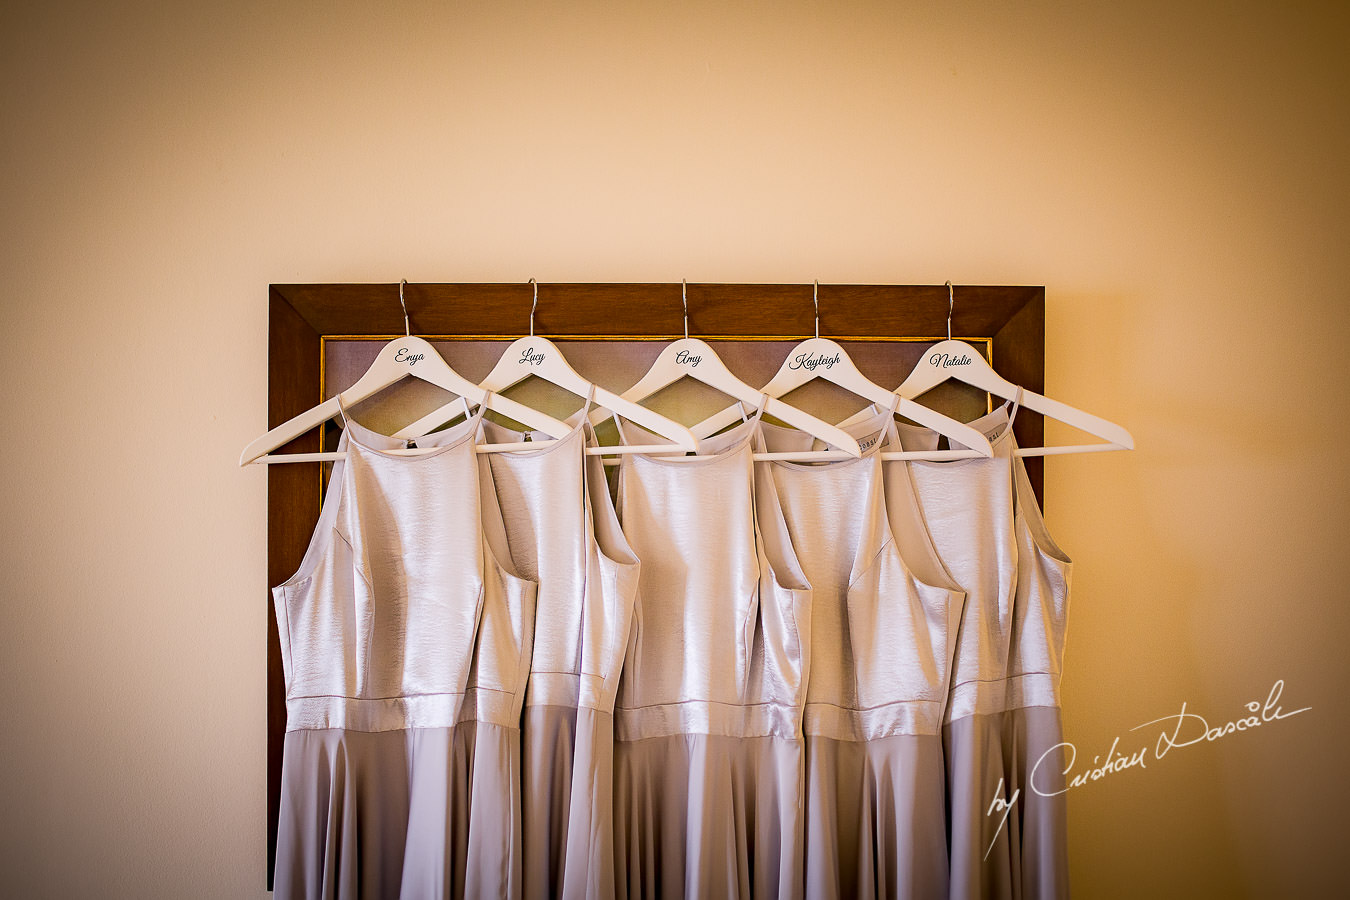 Bridal Party Gowns at a Beautiful Wedding at Elias Beach Hotel captured by Cyprus Photographer Cristian Dascalu.